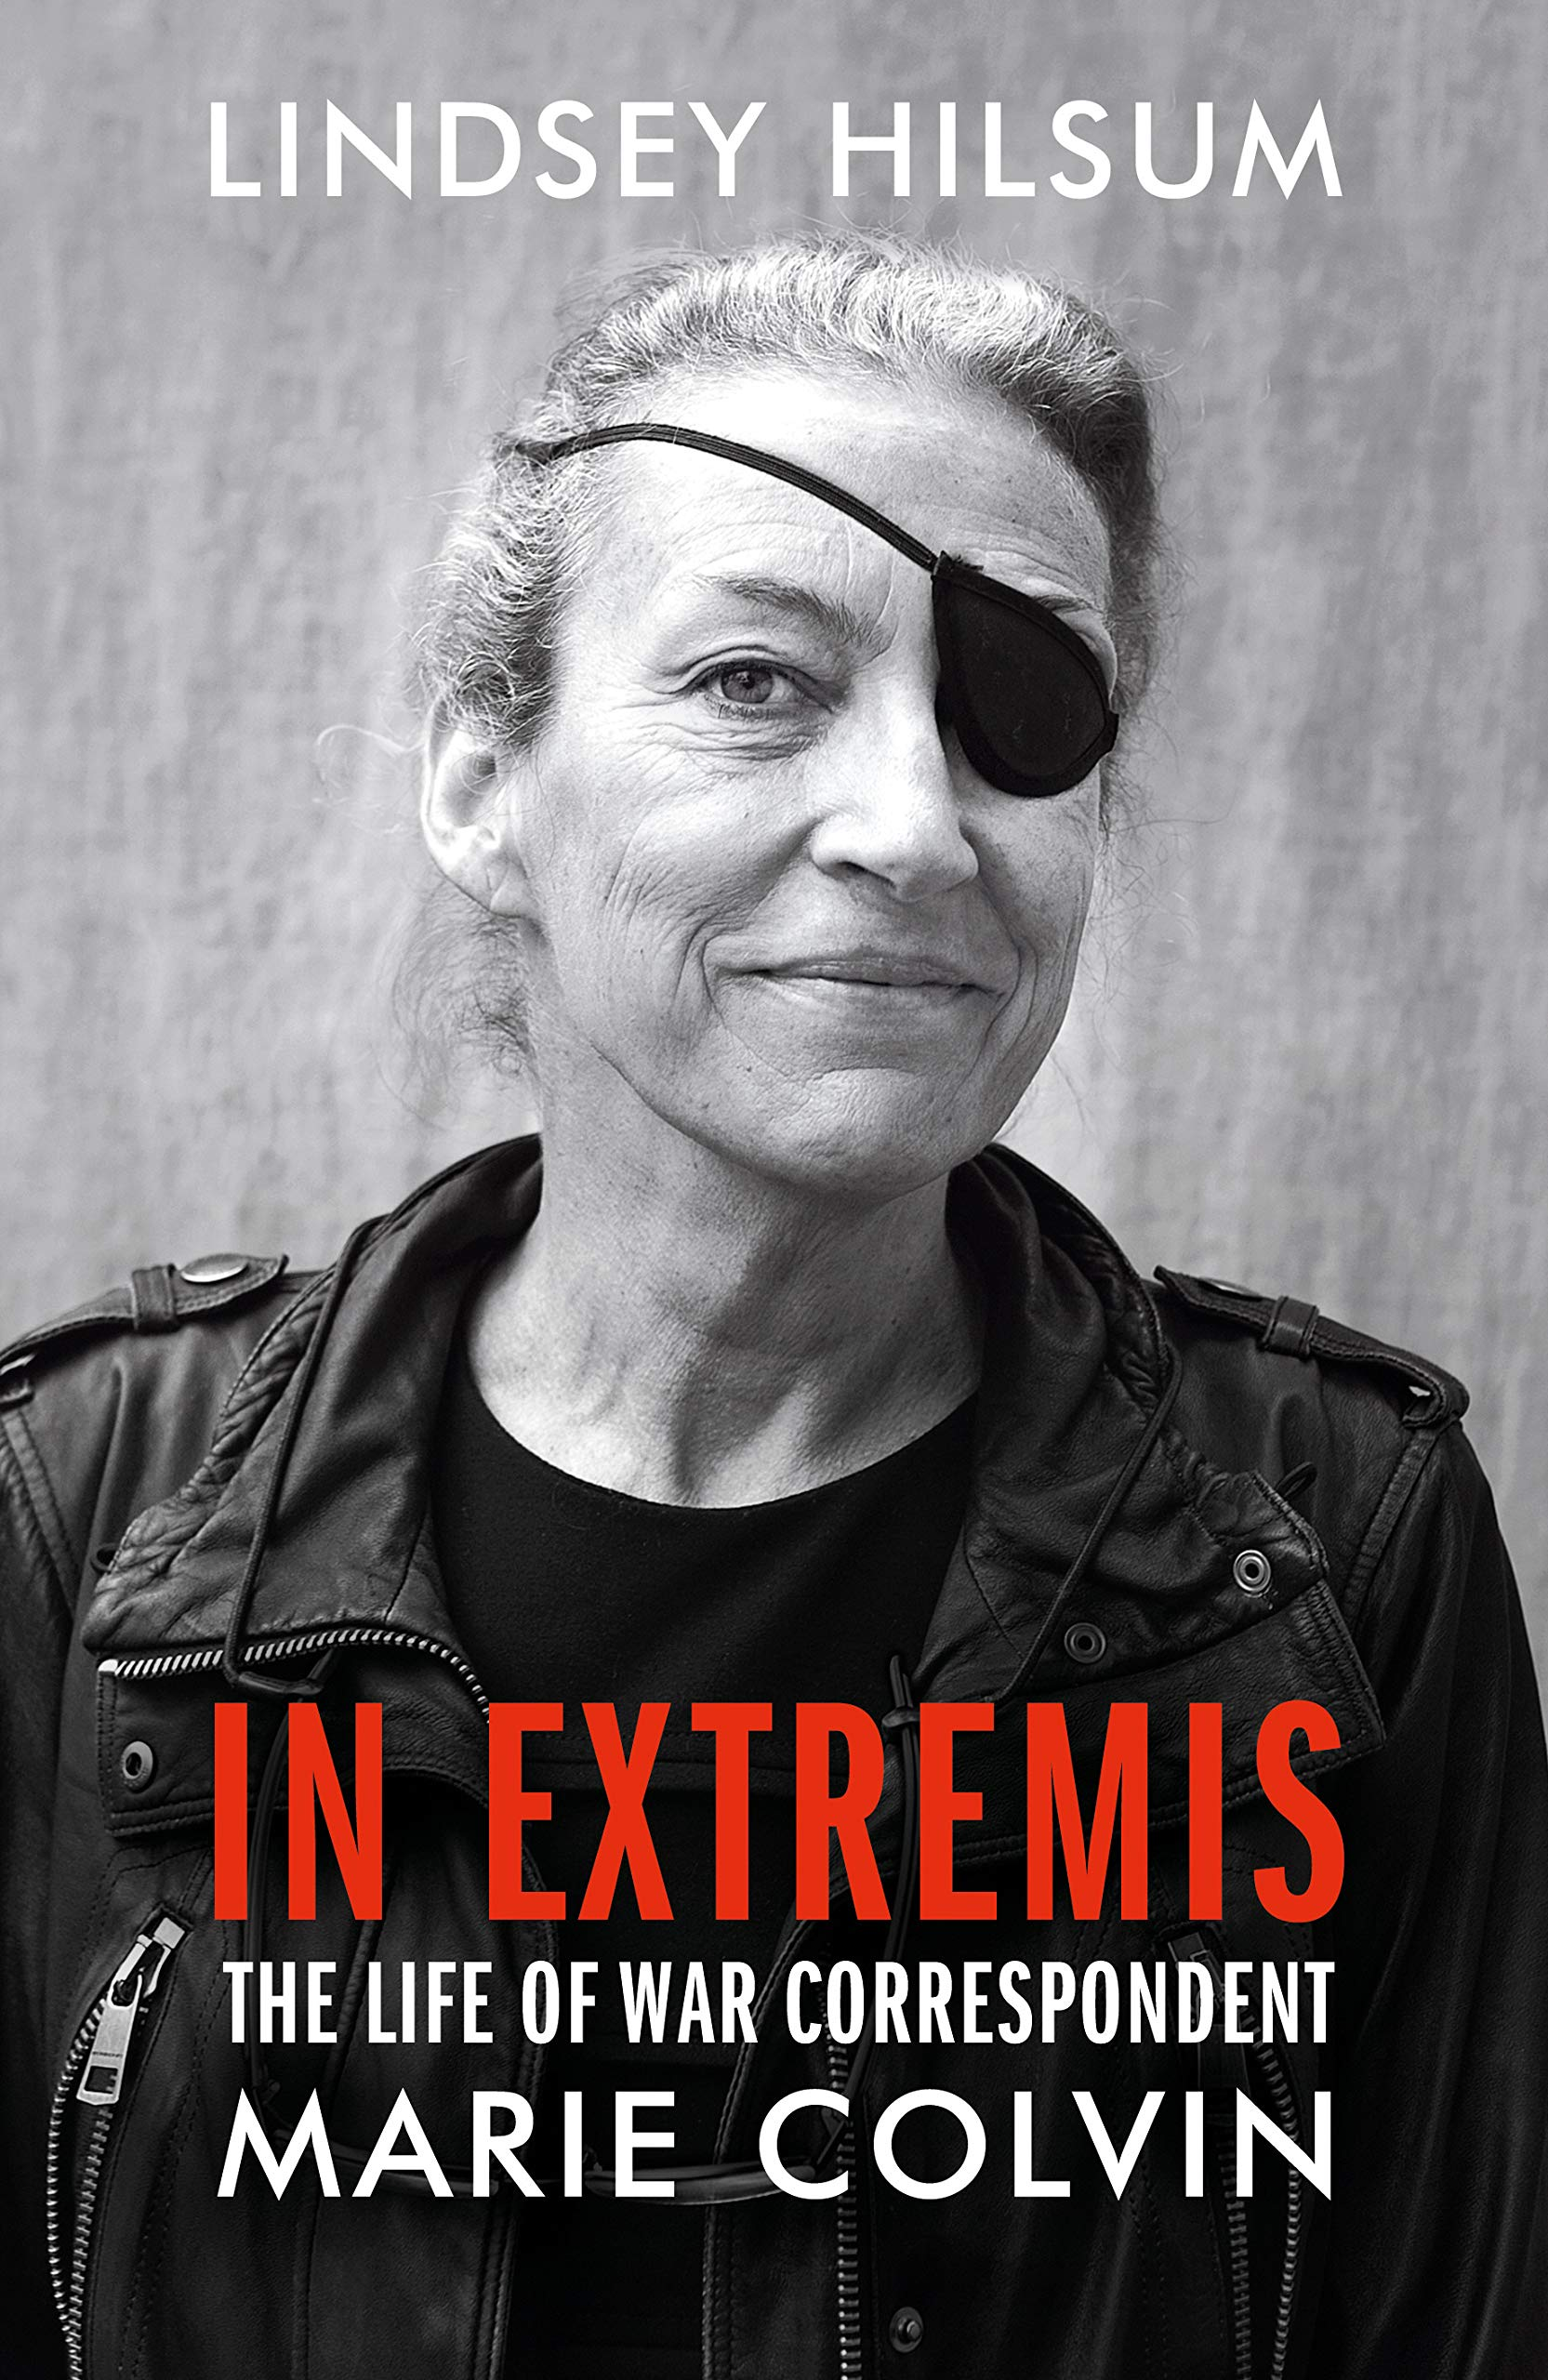 Image result for In Extremis: The Life of War Correspondent Marie Colvin by Lindsey Hilsum